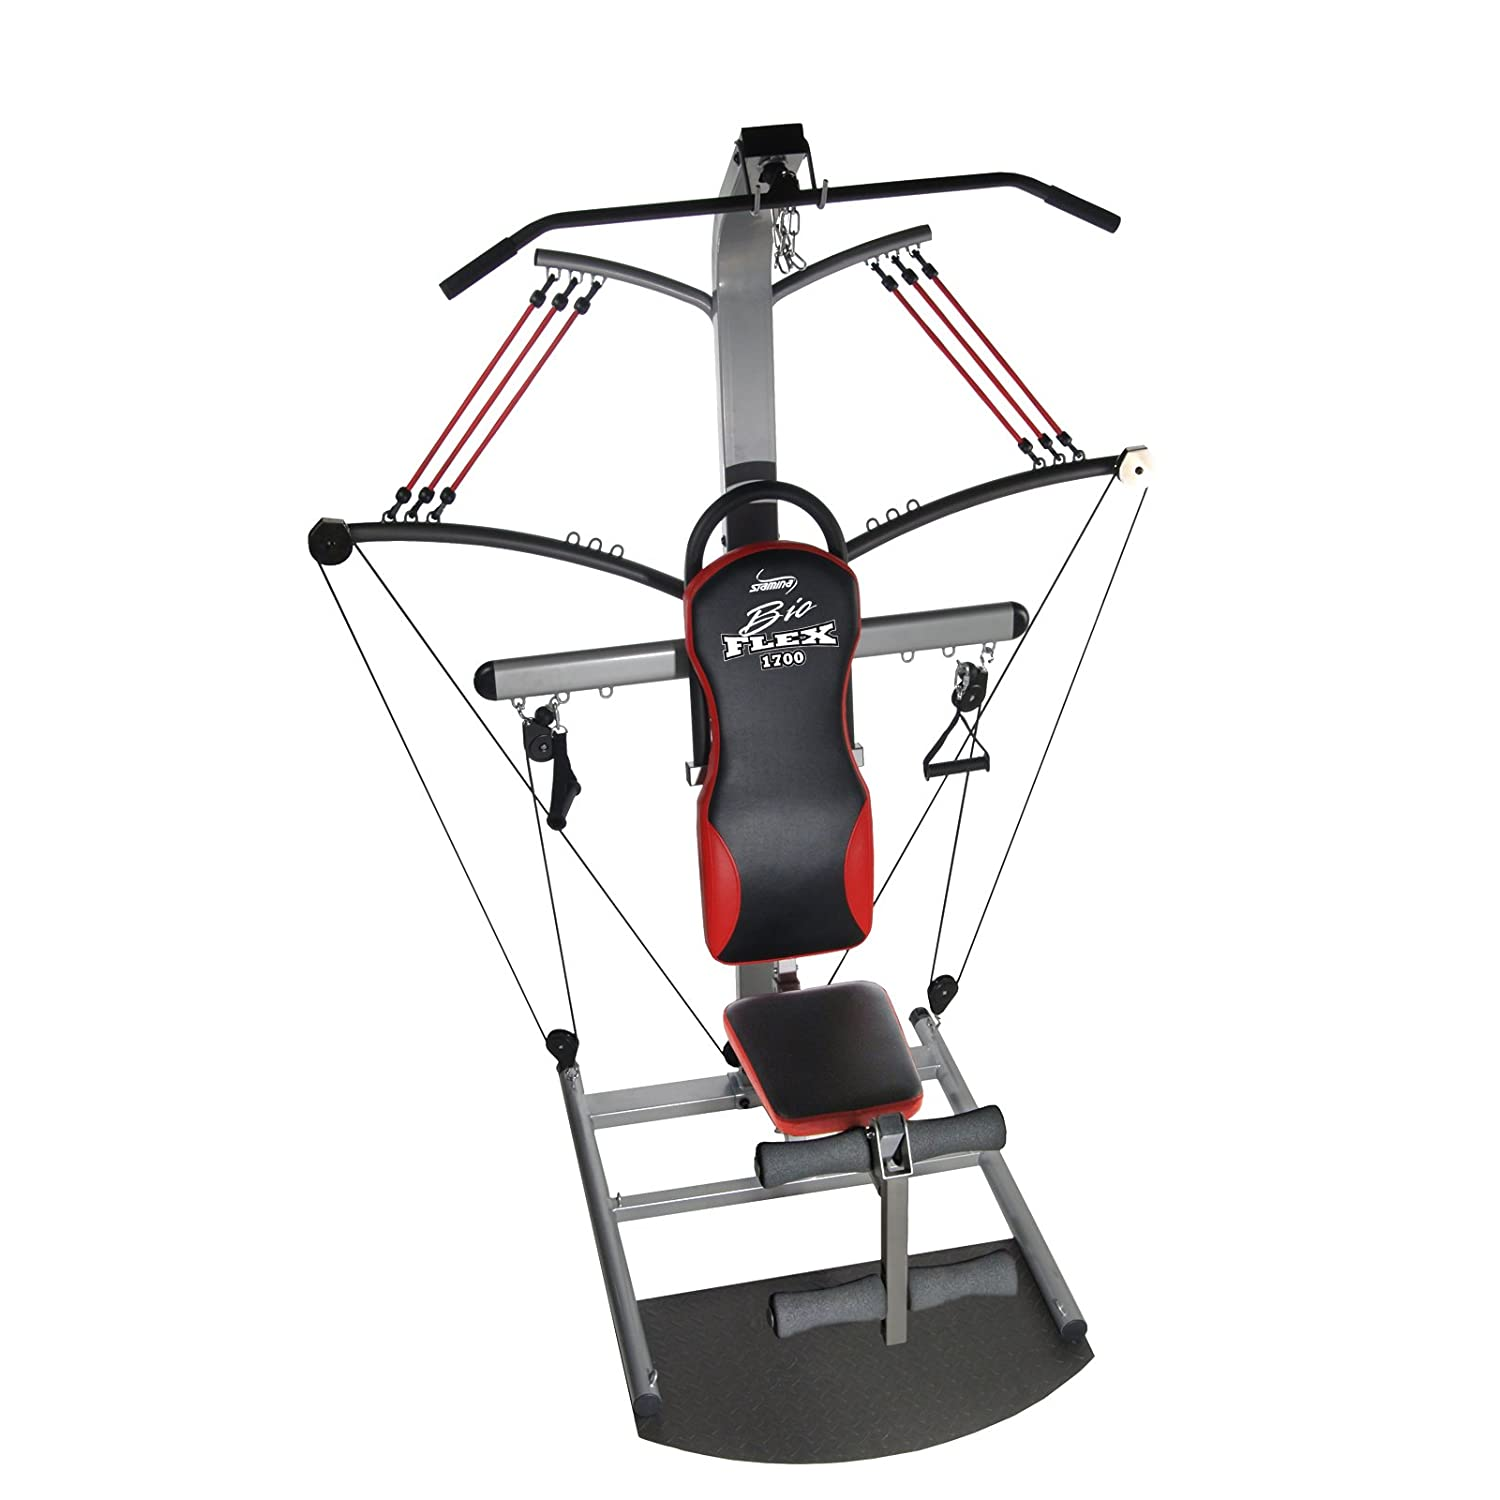 Cool image about Home Gym Equipment - it is cool